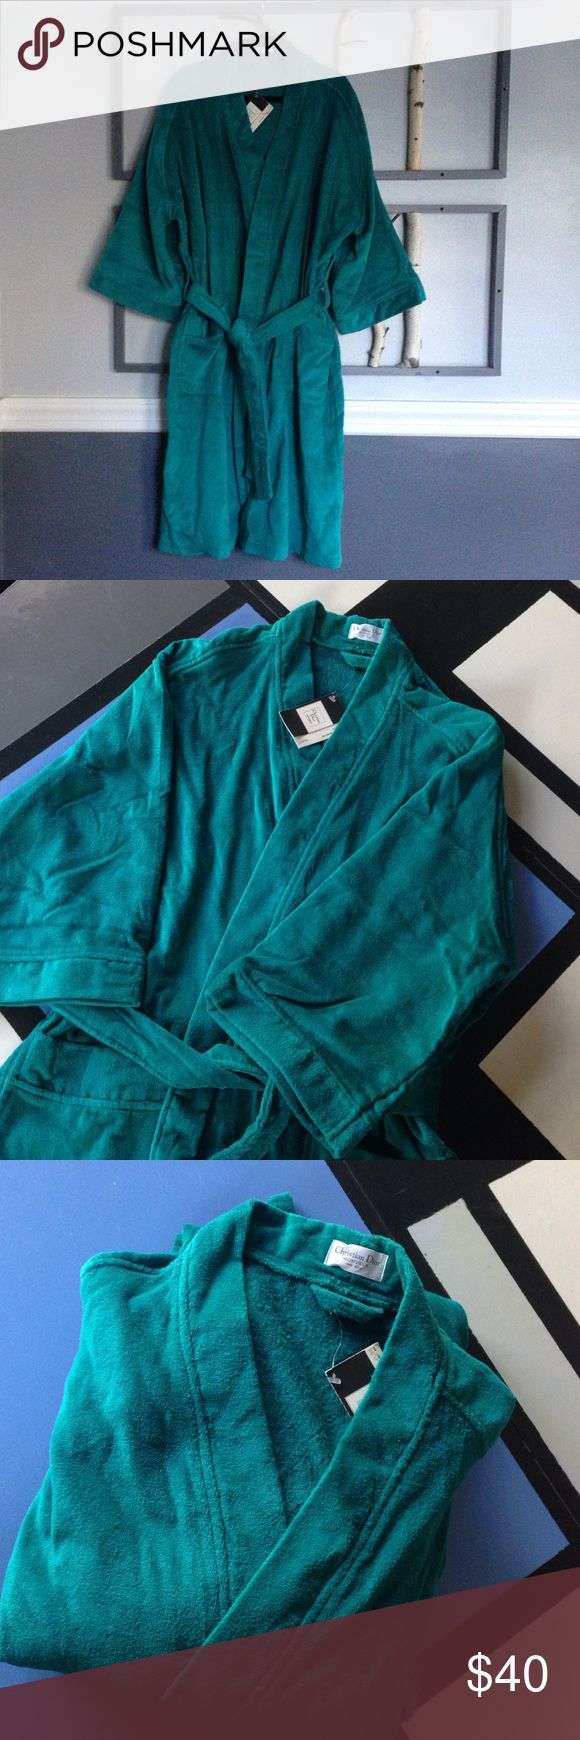 "Retro Dior Bathrobe - Teal - Men OS and Women XL+ This with tags Christian Dior ""Monsieur"" terry bathrobe in snazzy teal is 100 cotton comfortable.  Two pockets hold your shower/bath essentials and the two tiered belt loops ensure a snug fit.  While the label is one size for Men, I think it will work for the Ladies XL and up as well. Cannot be bundled with other closet items due to shipping weight. Christian Dior Other"